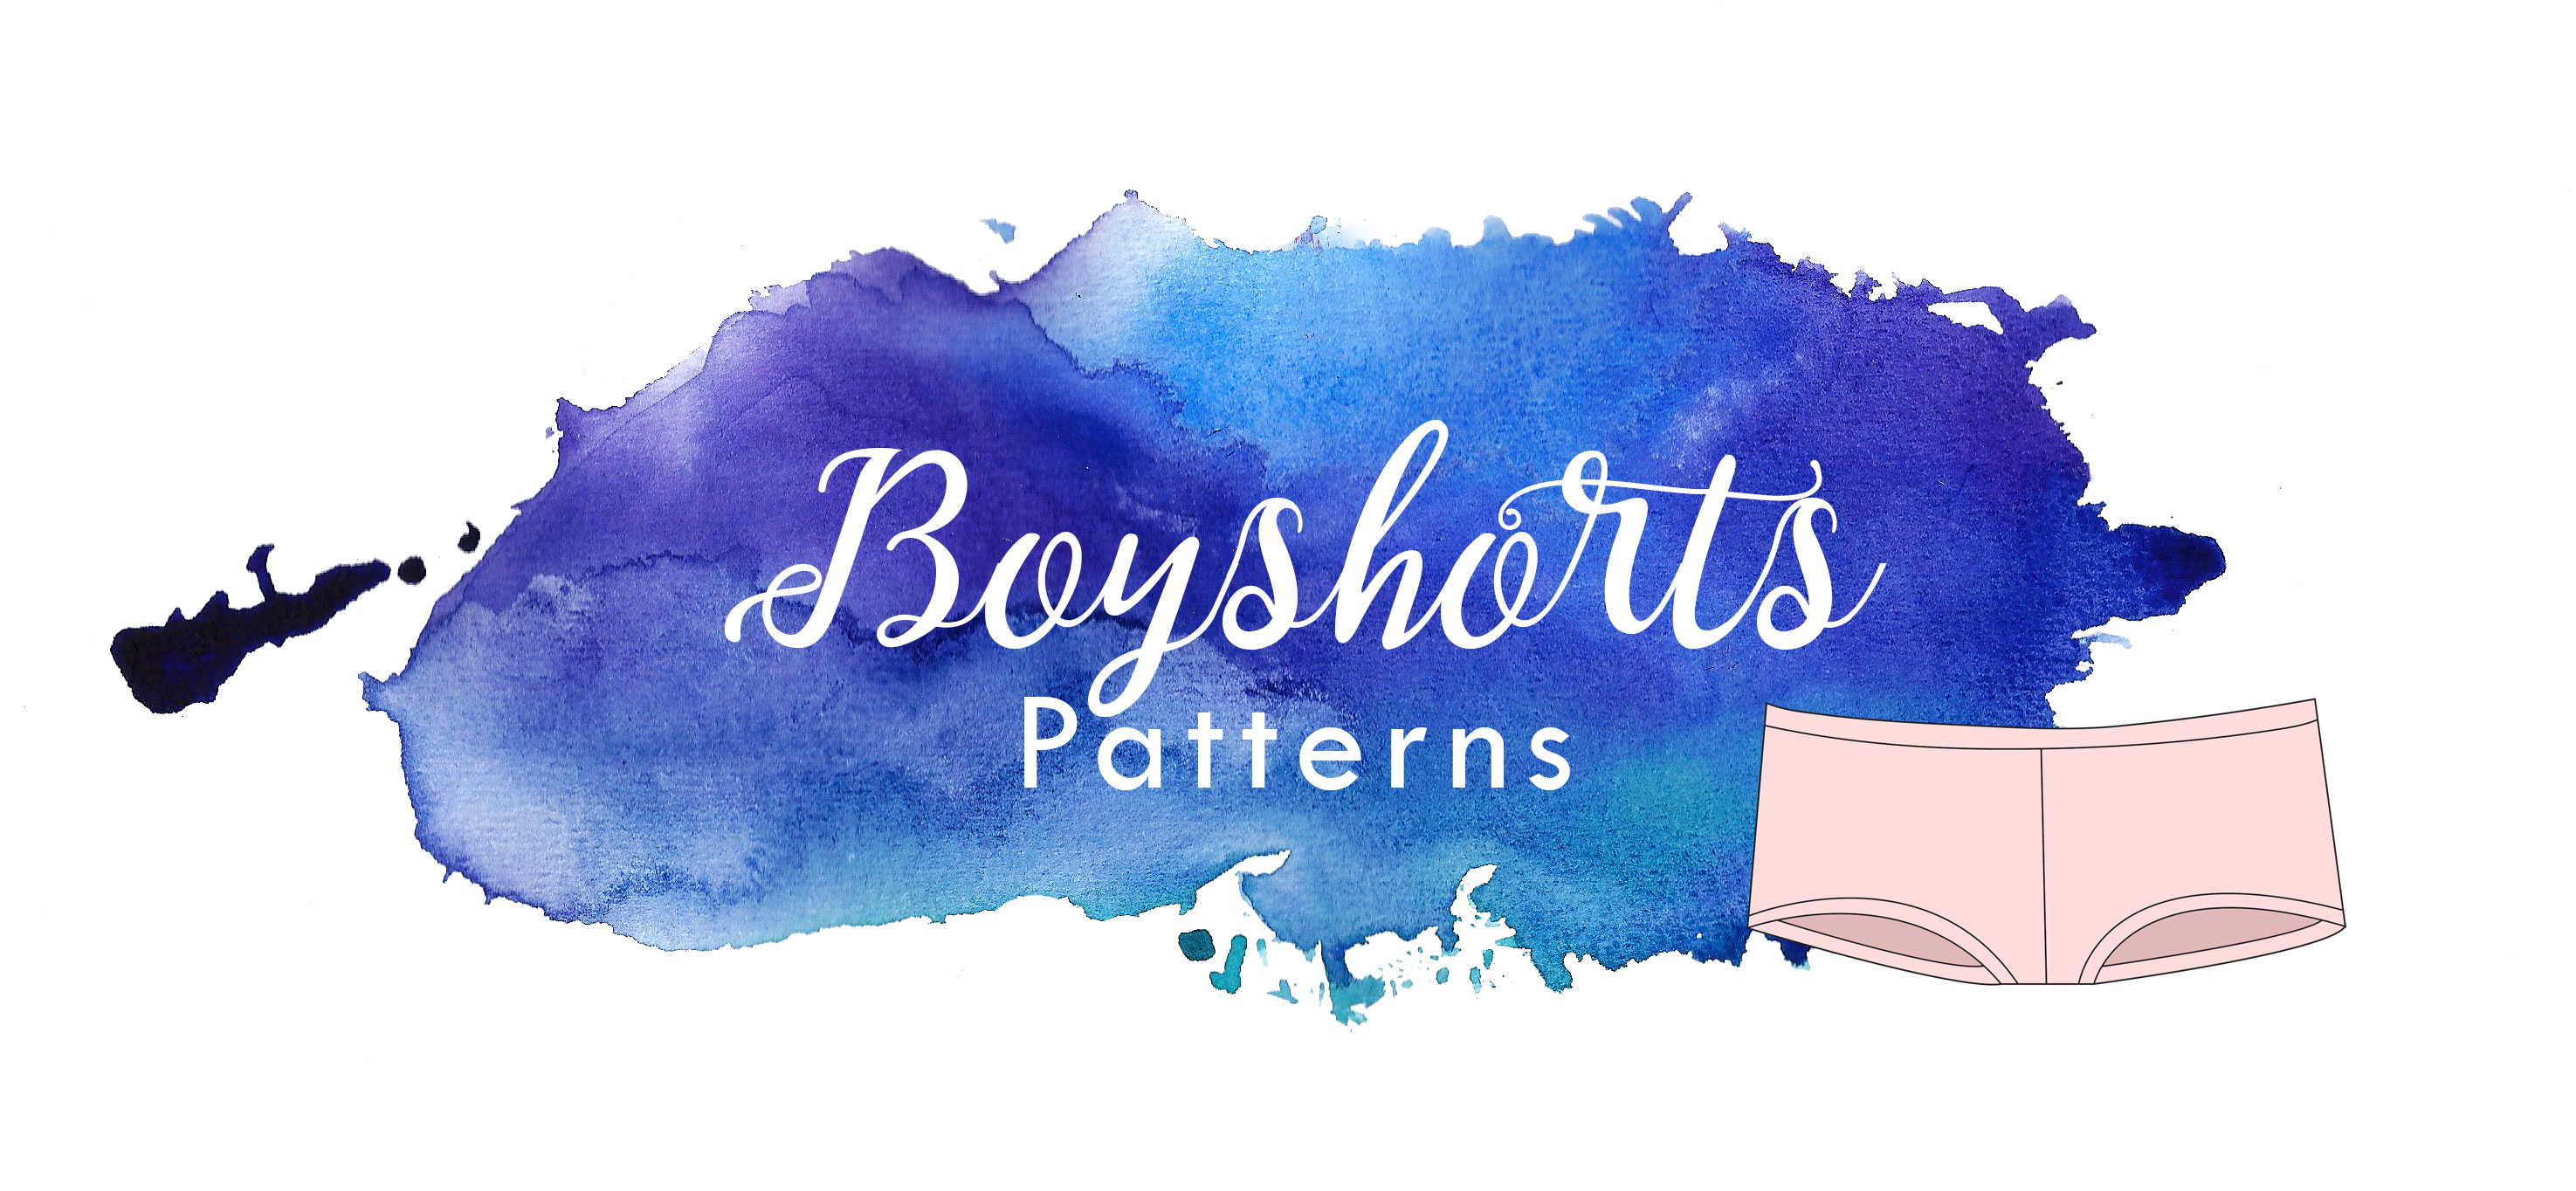 boyshorts boybriefs underwear knickers sewing panties patterns